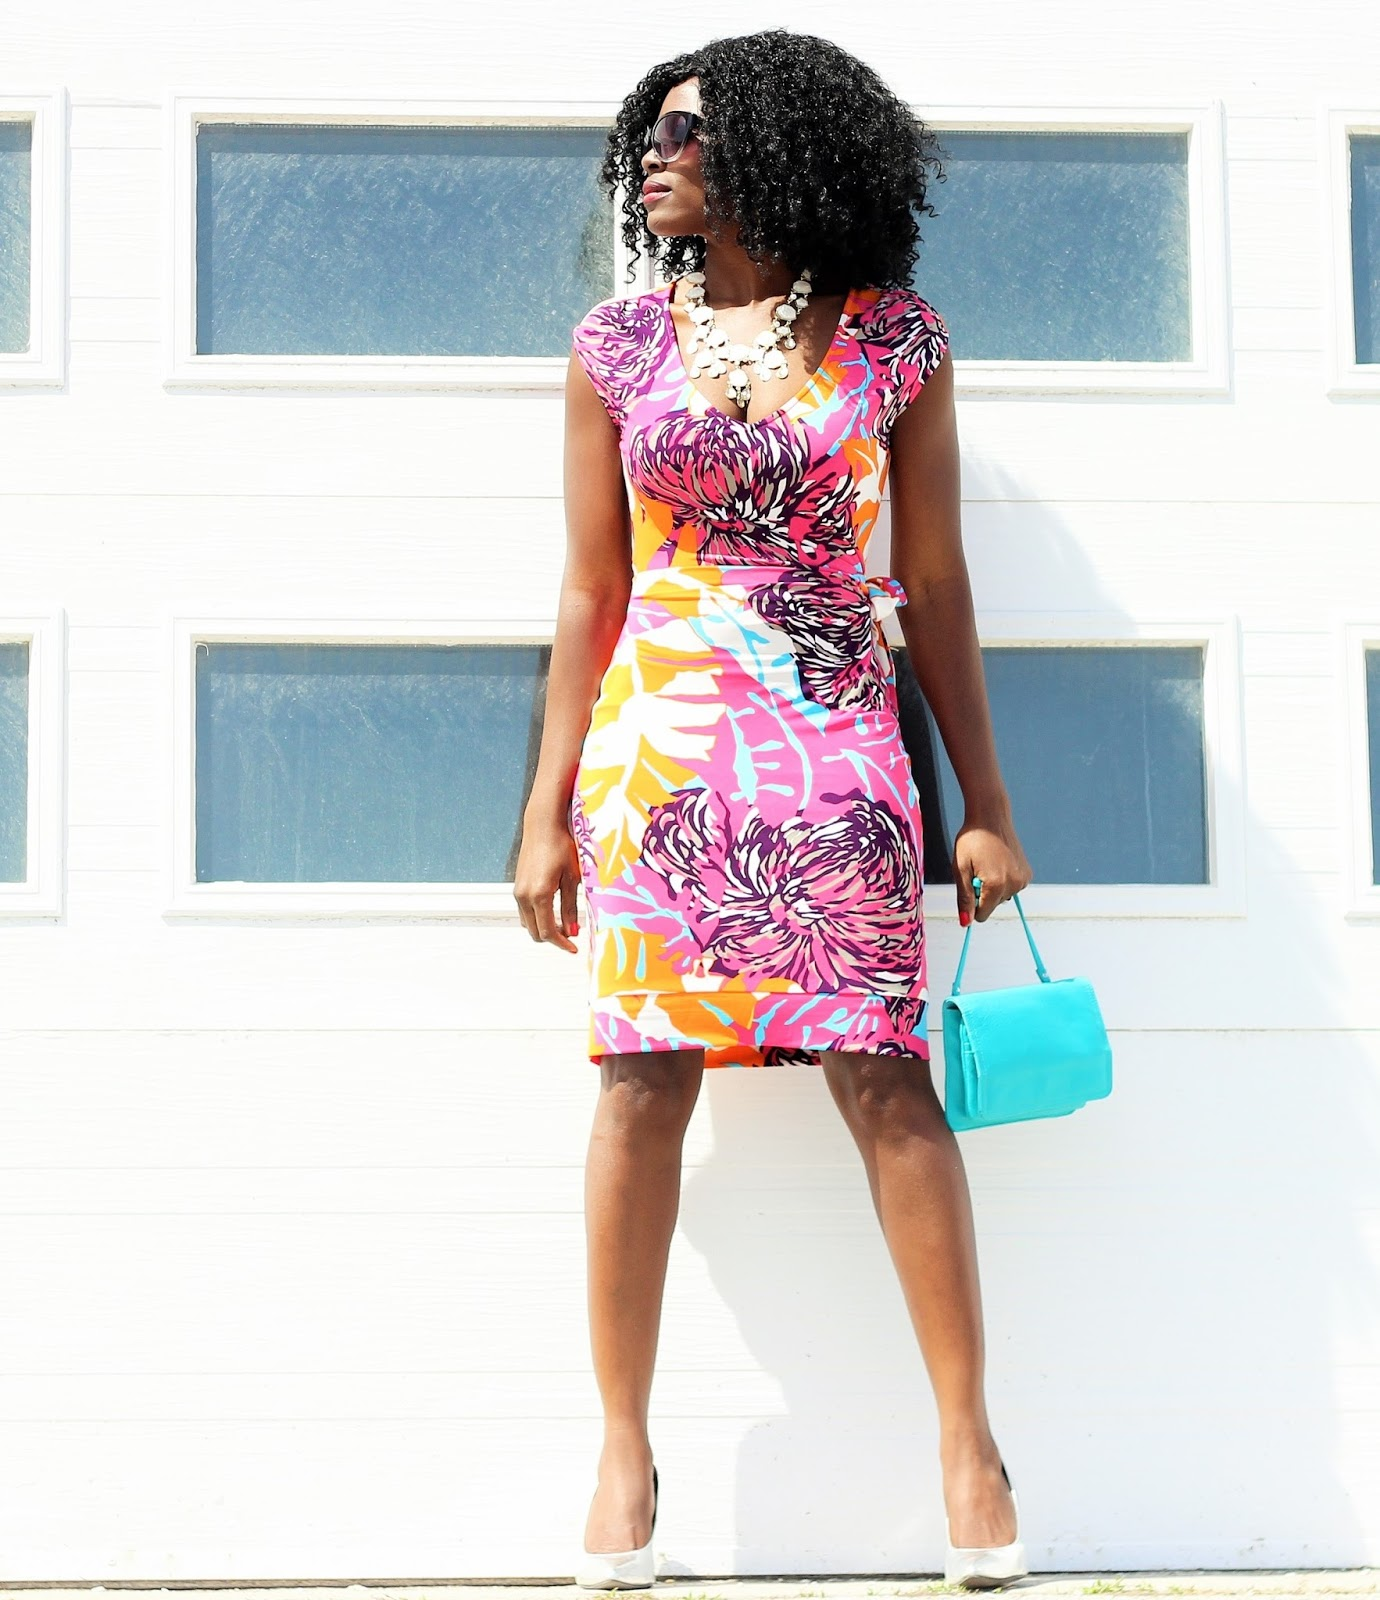 GIRL, YOU SHOULD BE WEARING THIS HALE BOB DRESS FOR SUMMER